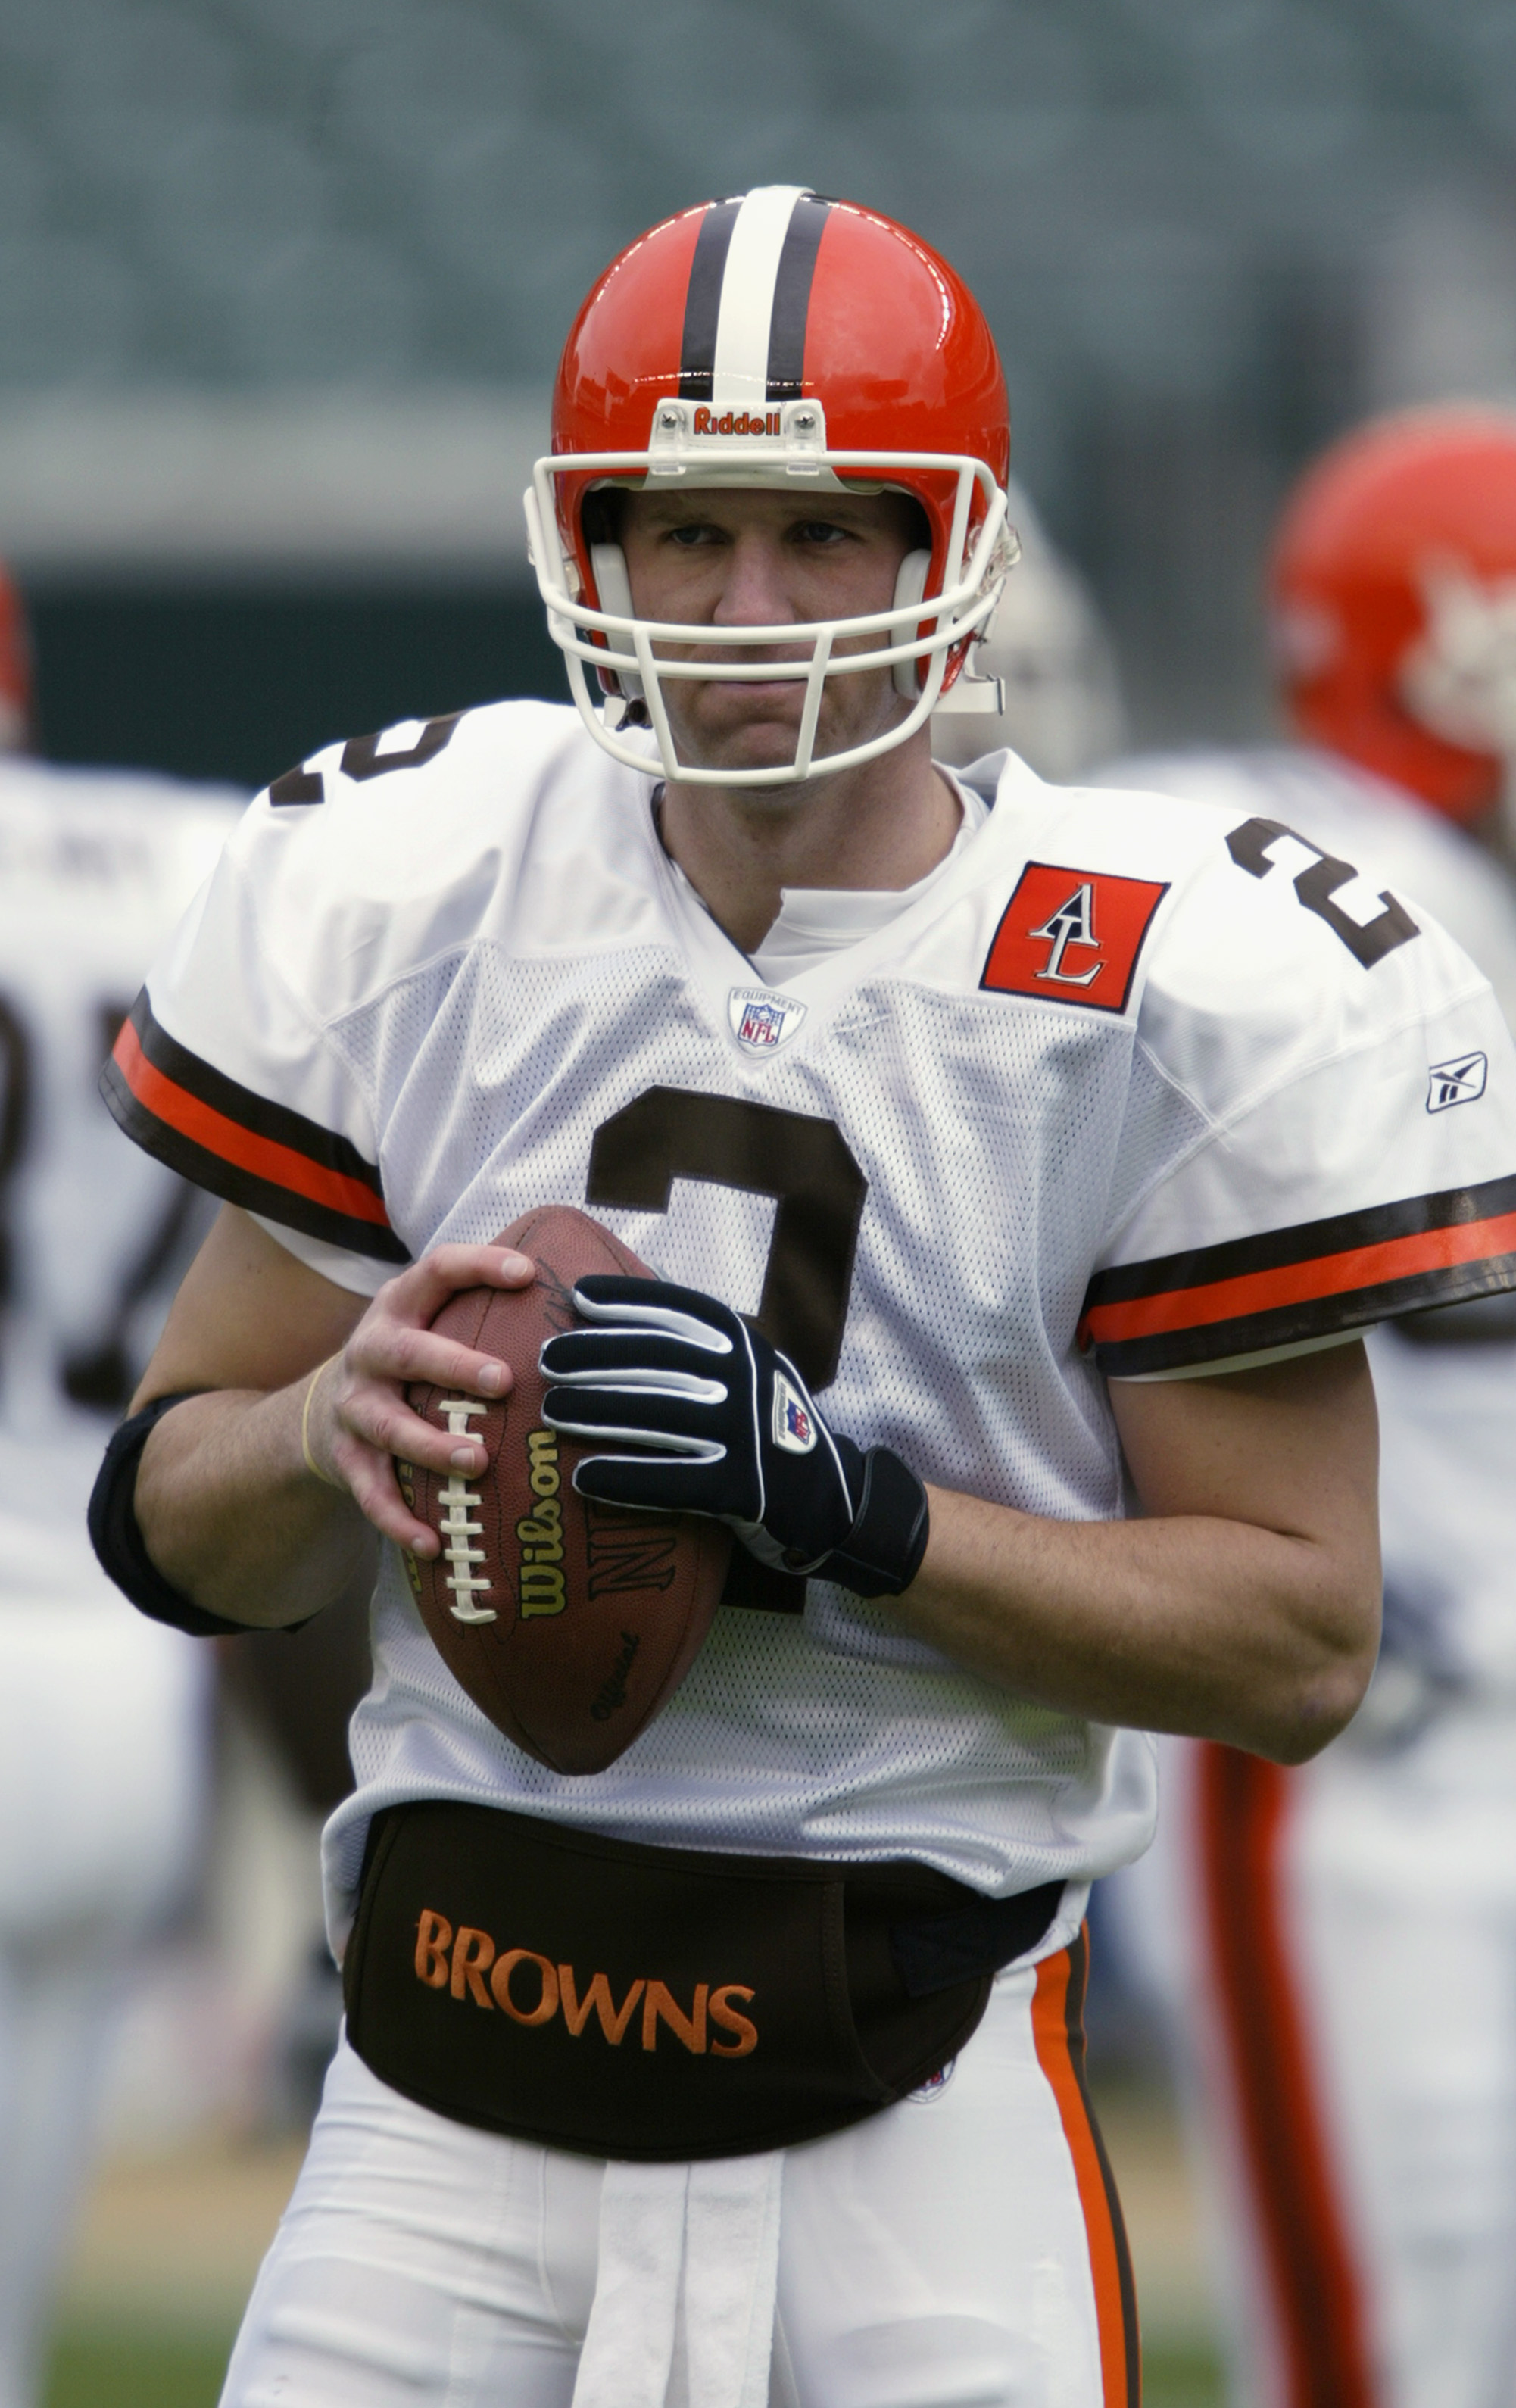 CINCINNATI - NOVEMBER 17:  Quarterback Tim Couch #2 of the Cleveland Browns throws the ball during warm-ups prior to the NFL game against the Cincinnati Bengals at Paul Brown Stadium on November 17, 2002 in Cincinnati, Ohio. The Browns defeated the Bengal